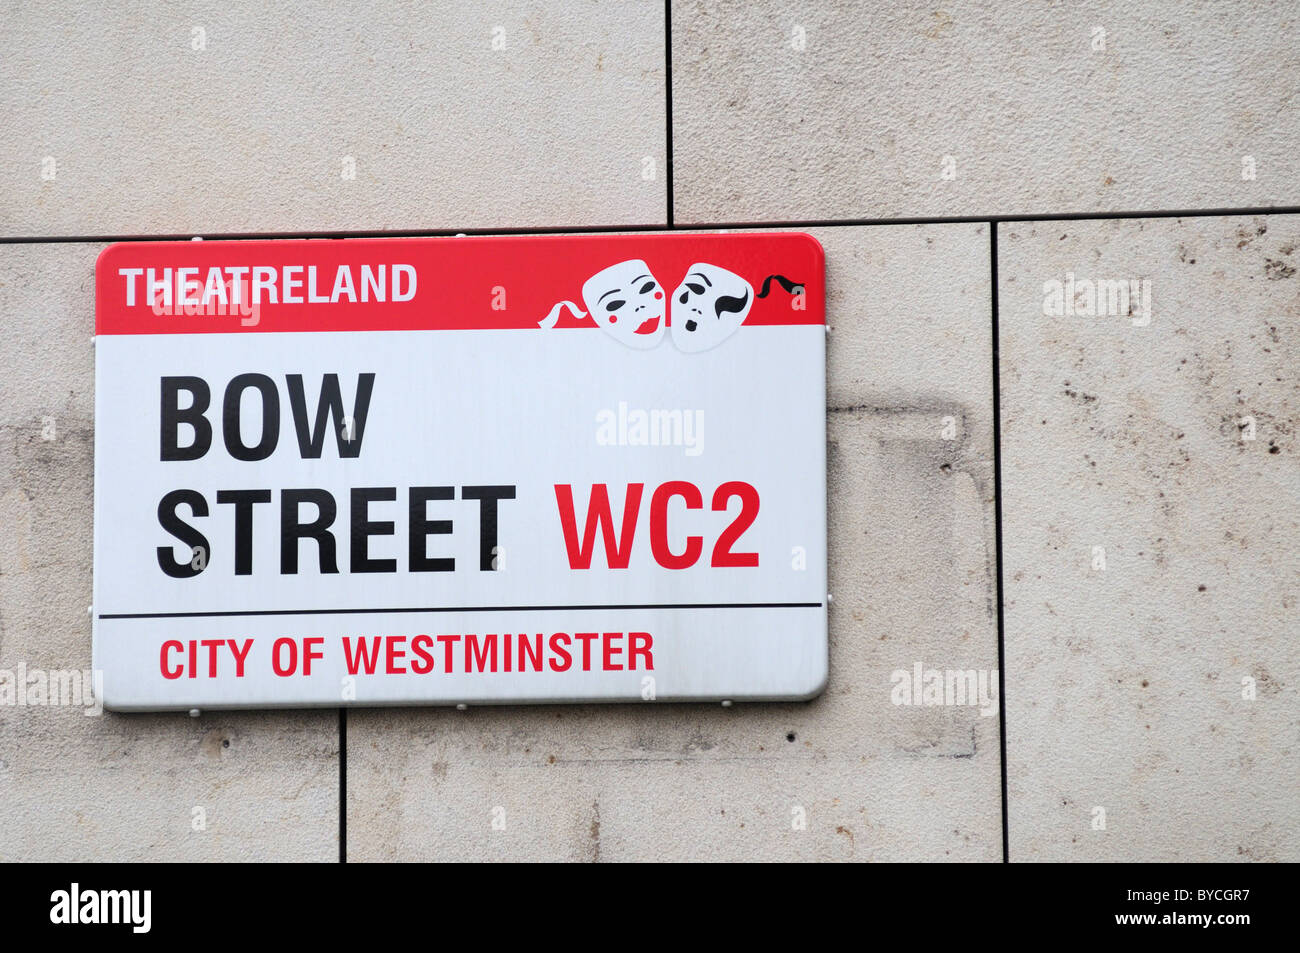 Bow Street theatreland Street sign, London, England, UK - Stock Image